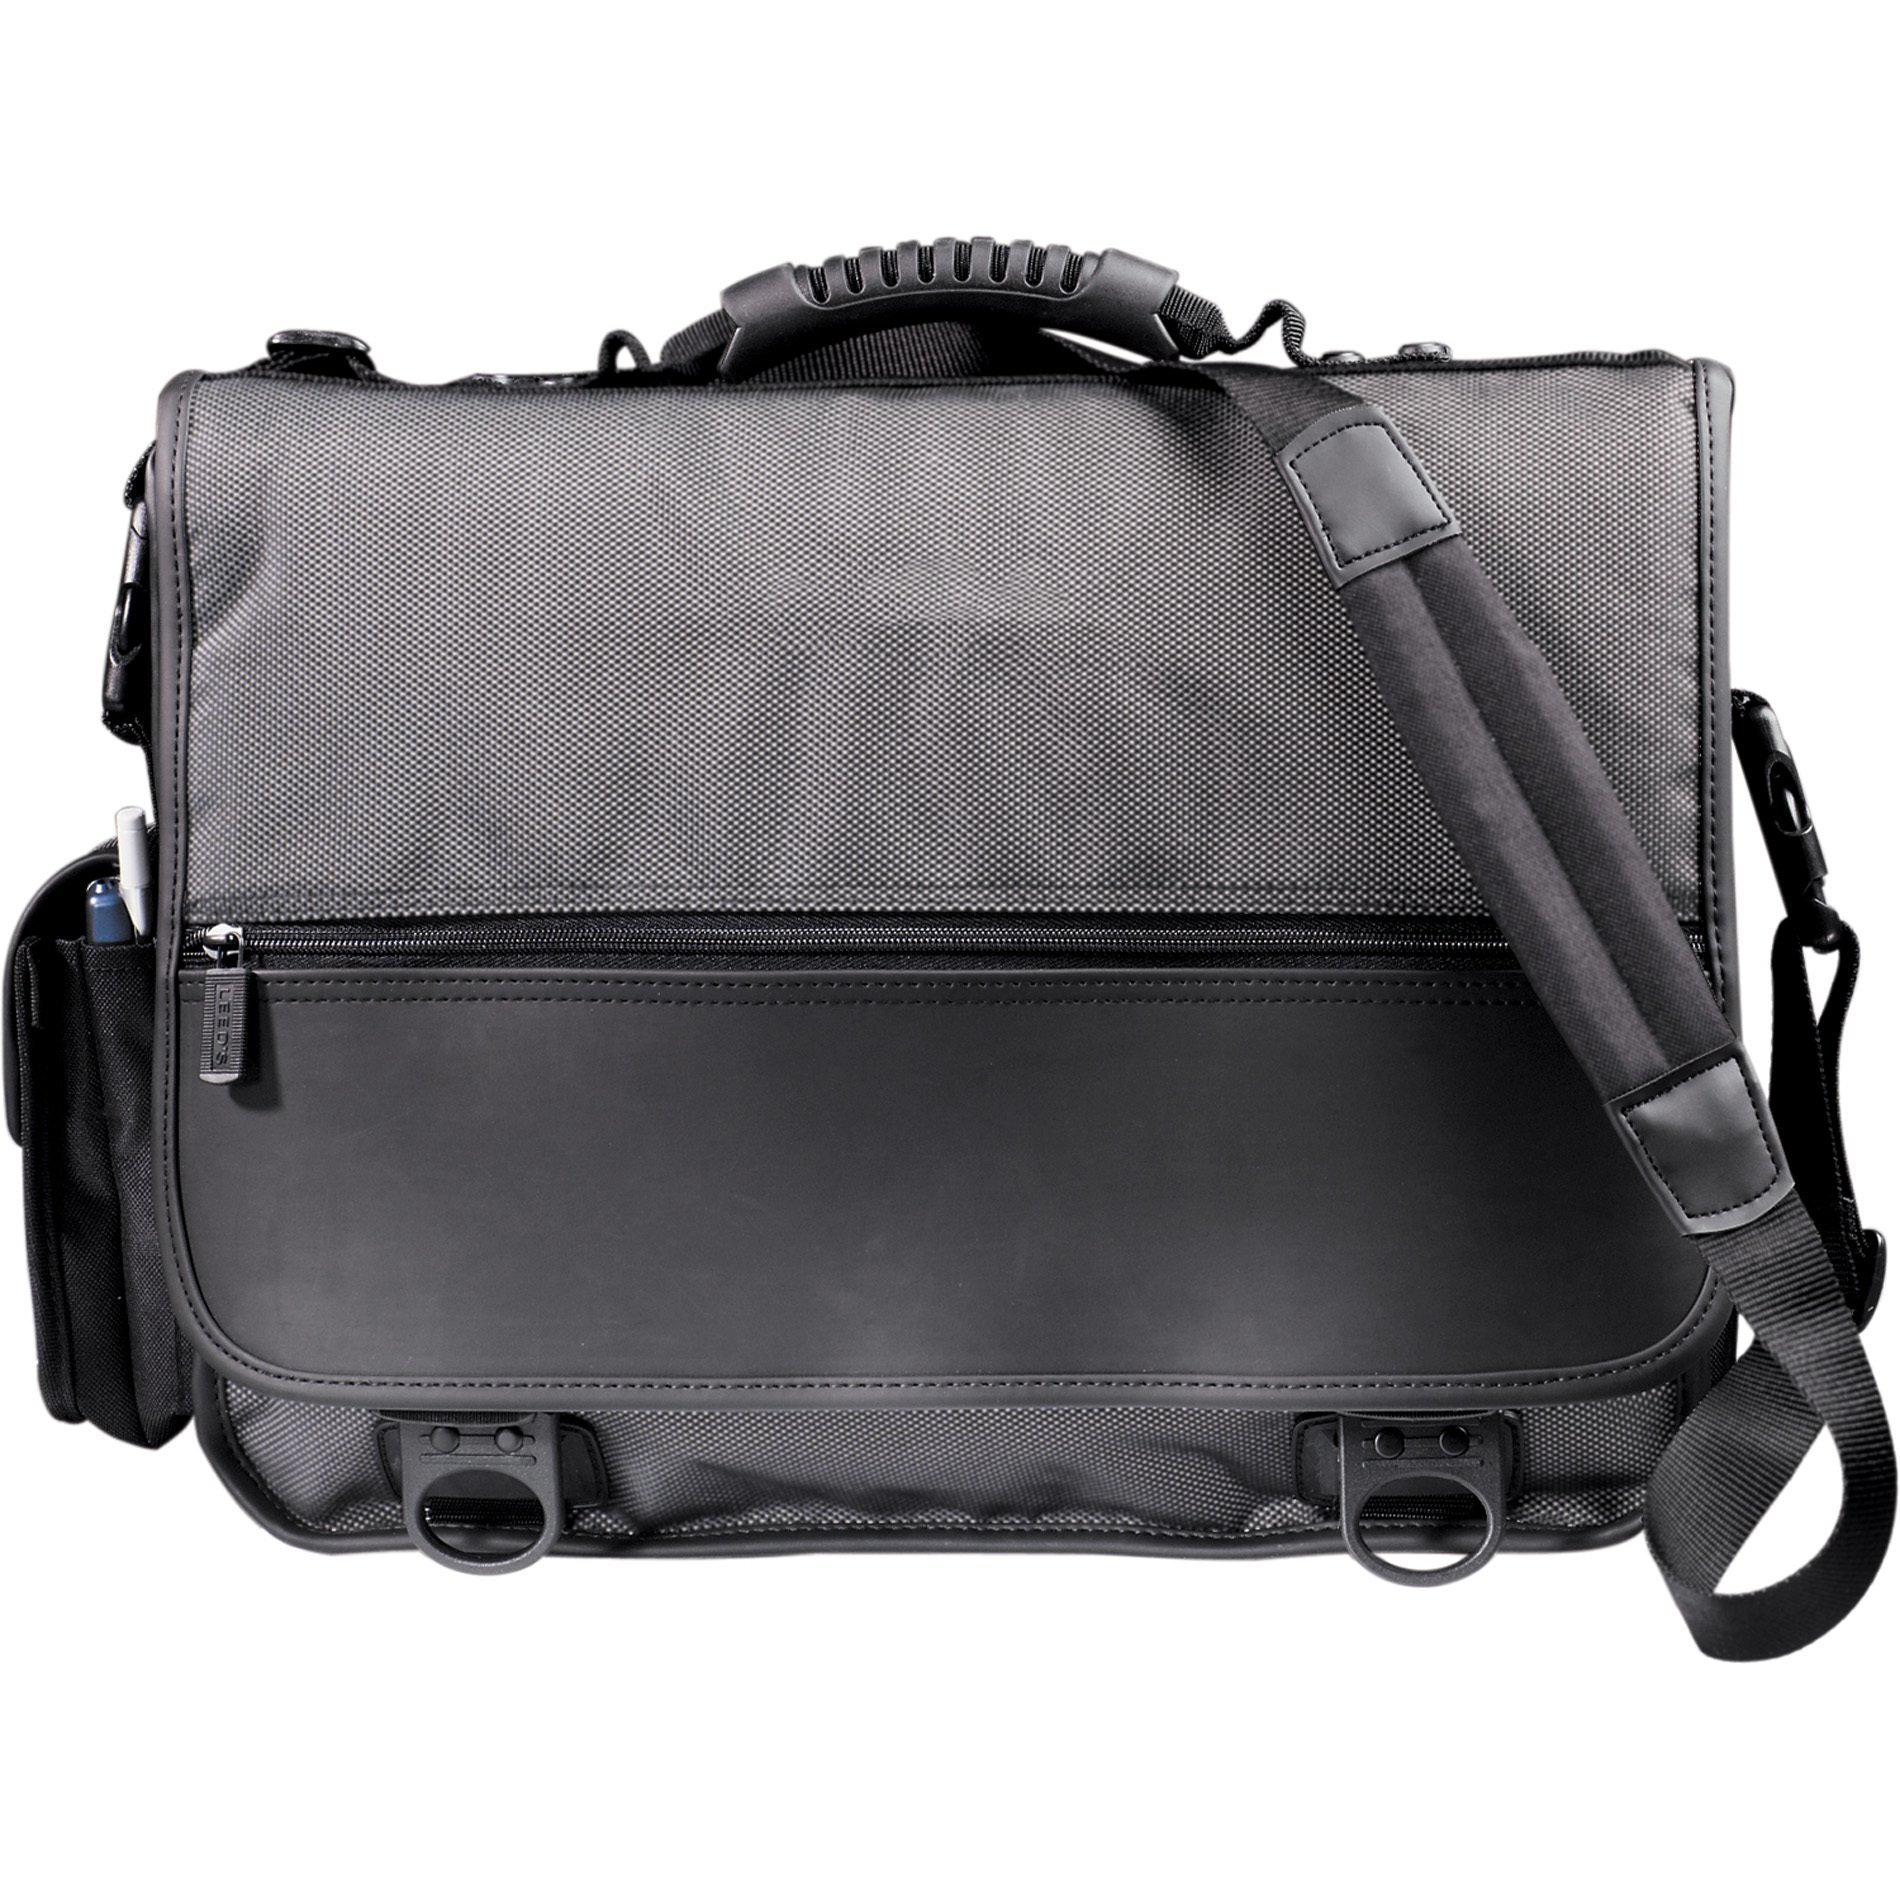 "MicroTek 15"" 1680D Nylon Computer Messenger Bag"